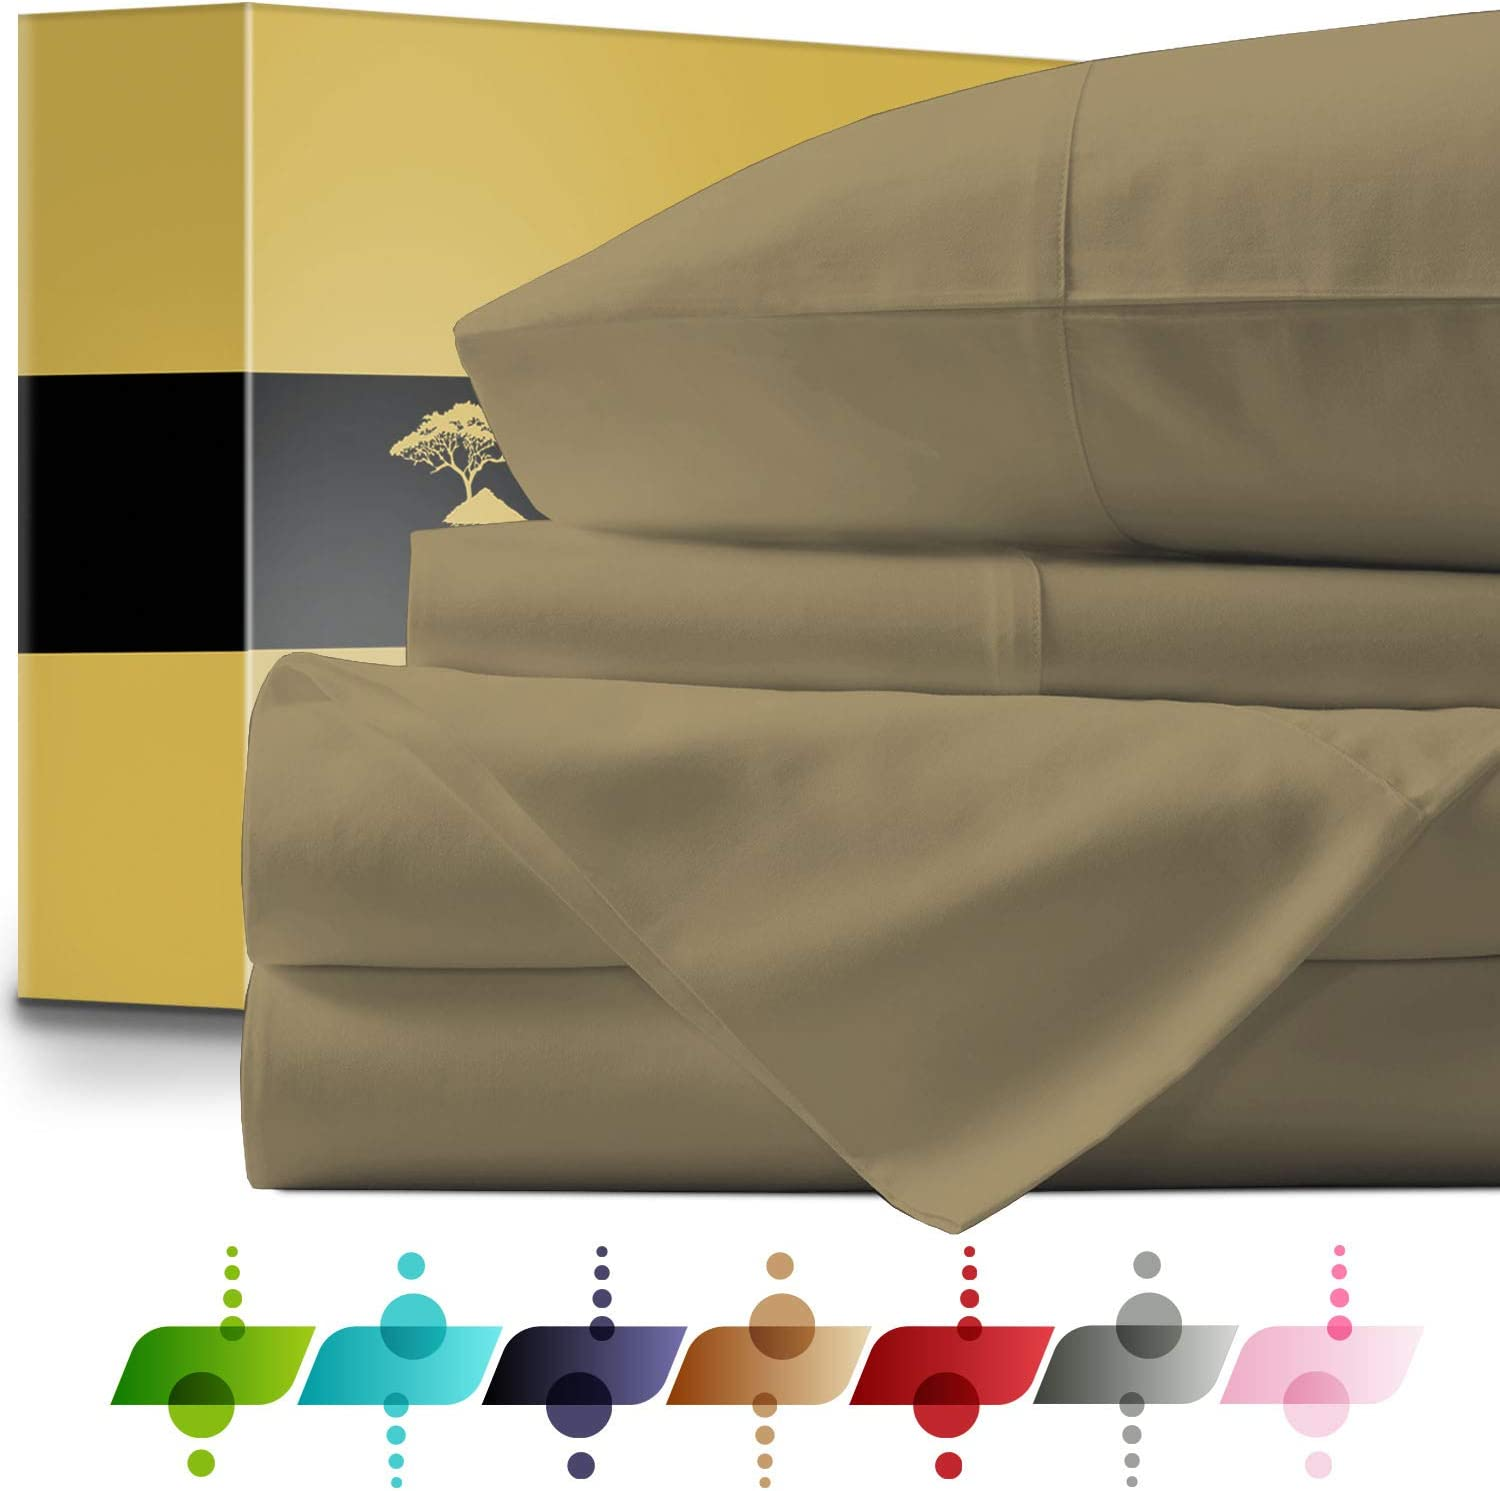 URBANHUT Egyptian Cotton Sheets Set - 1000 Thread Count 100% Cotton Bed Sheets Queen (4 Piece), Luxury Queen Size Sheets, Deep Pocket, Soft & Silky Sateen Weave (Sand, Queen)